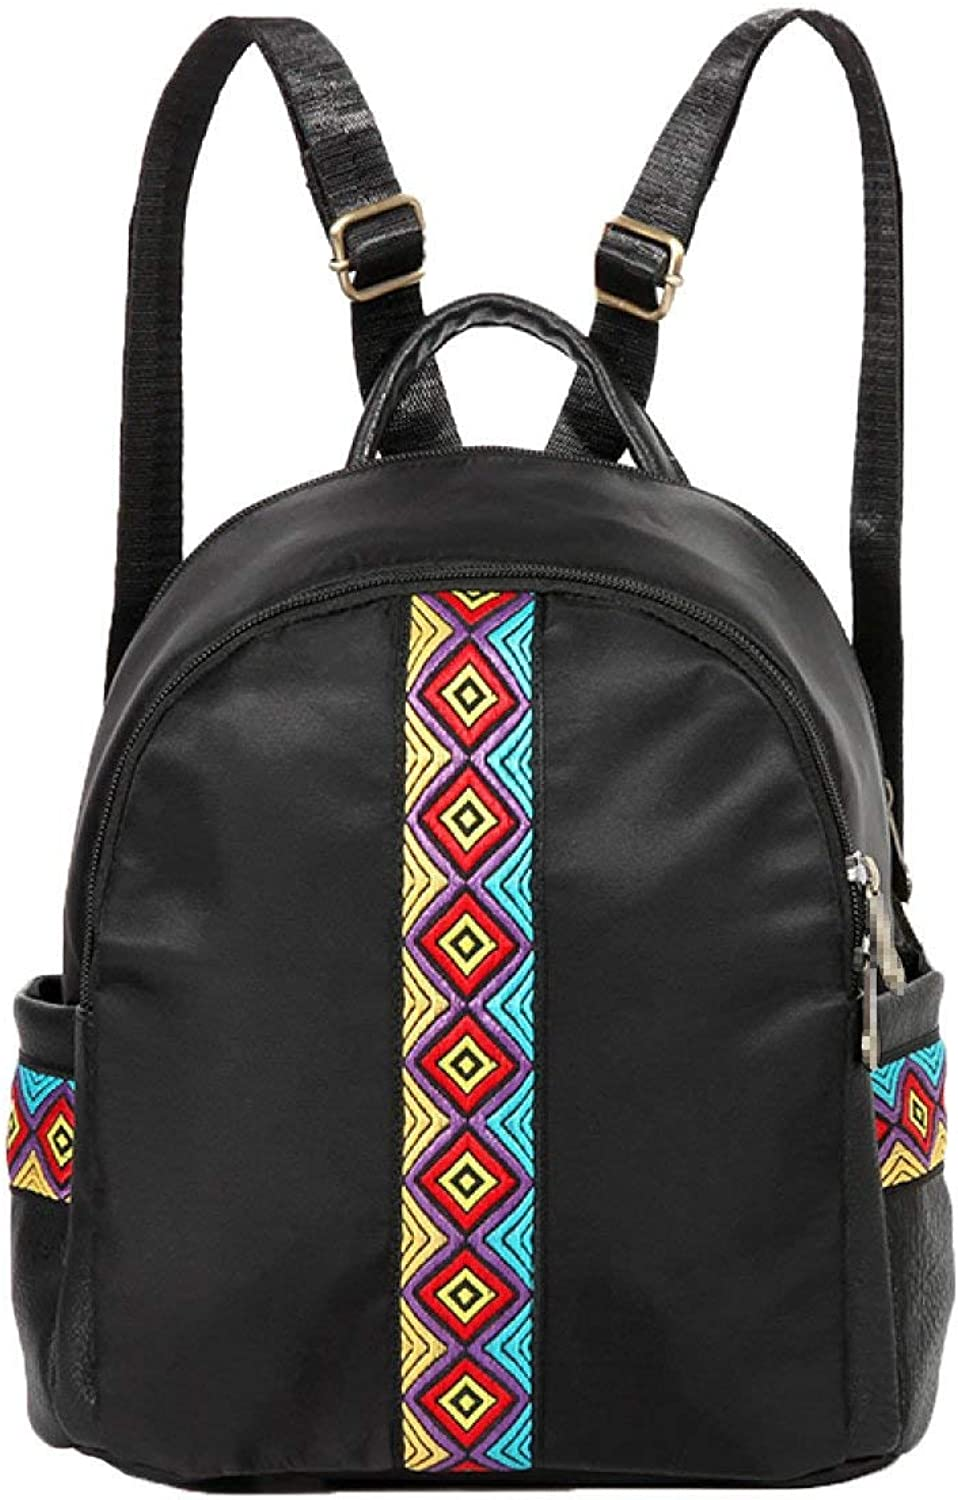 Kin Special Embroidered Nylon Waterproof Knapsack Woman Leisure Bag Travel Bag Casual Backpack